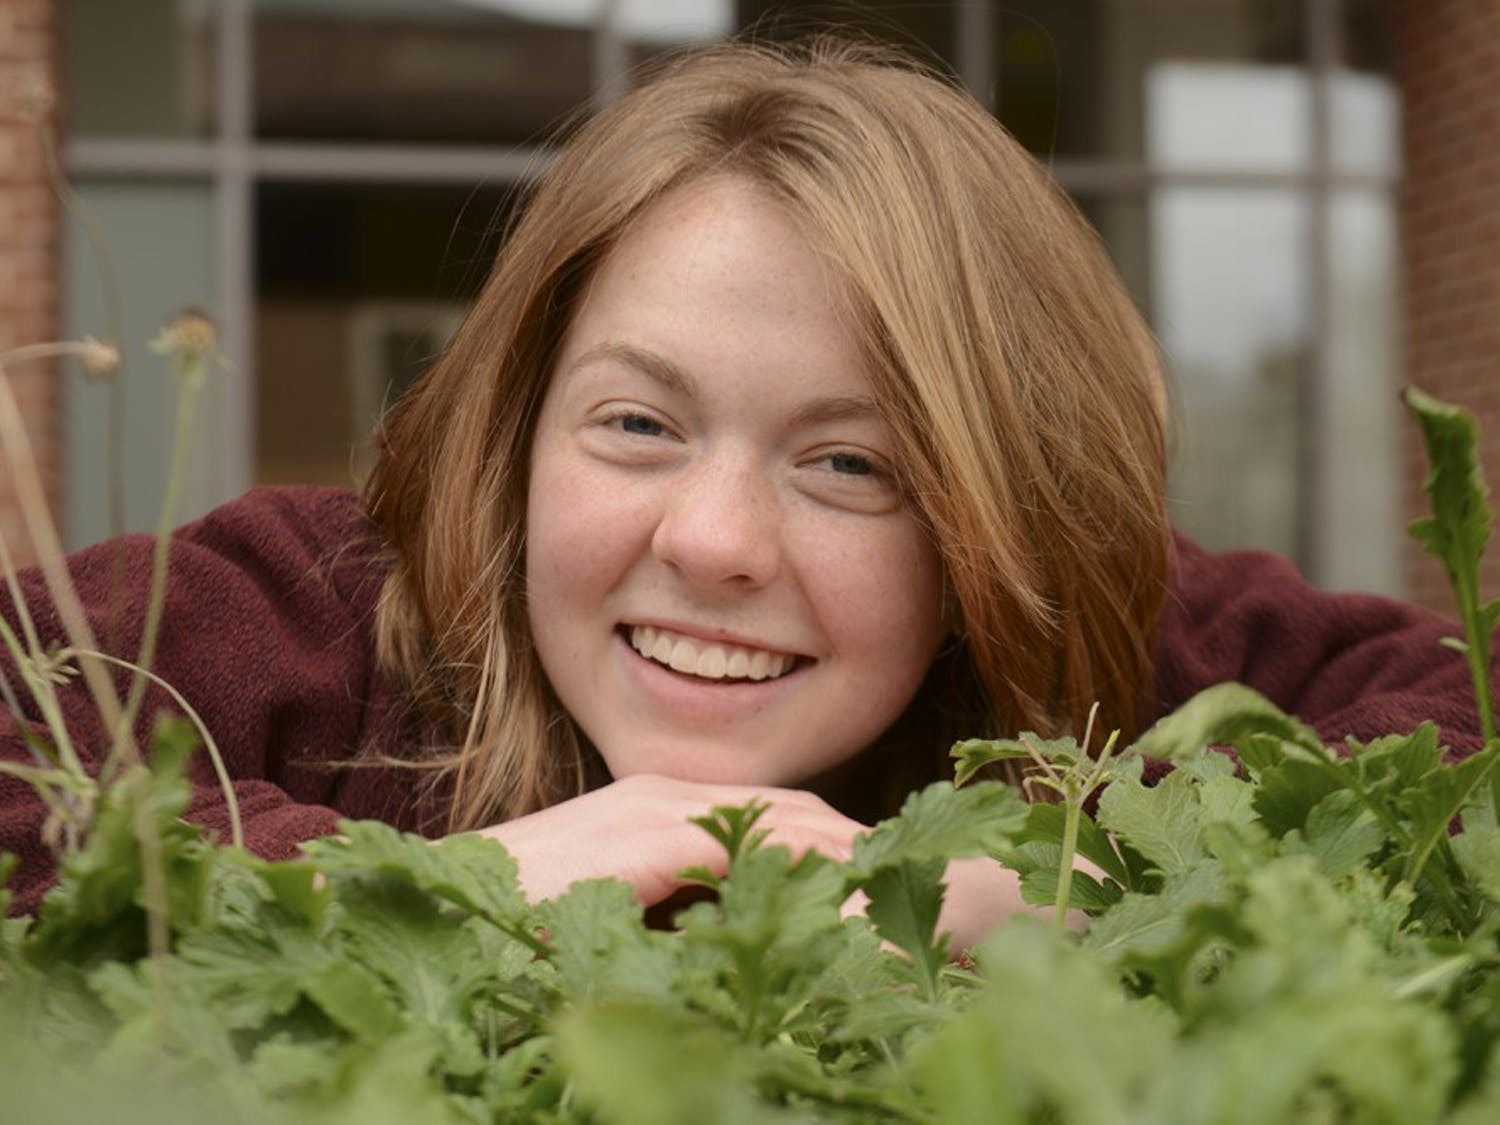 Lauren Zitney had a poem written for her about kale.